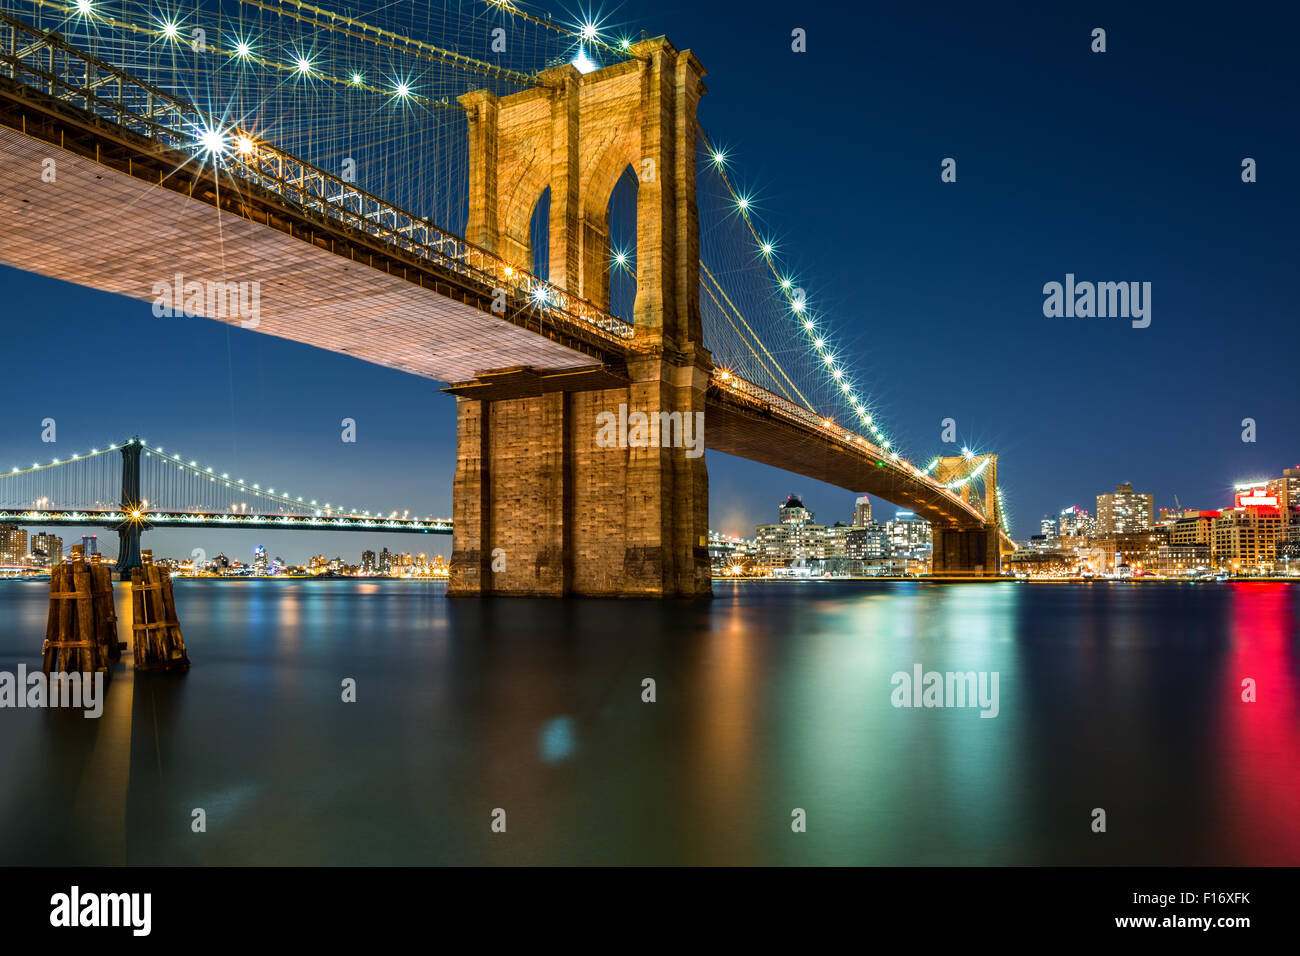 Illuminated Brooklyn Bridge by night as viewed from the Manhattan side - very long exposure for a perfectly smooth - Stock Image